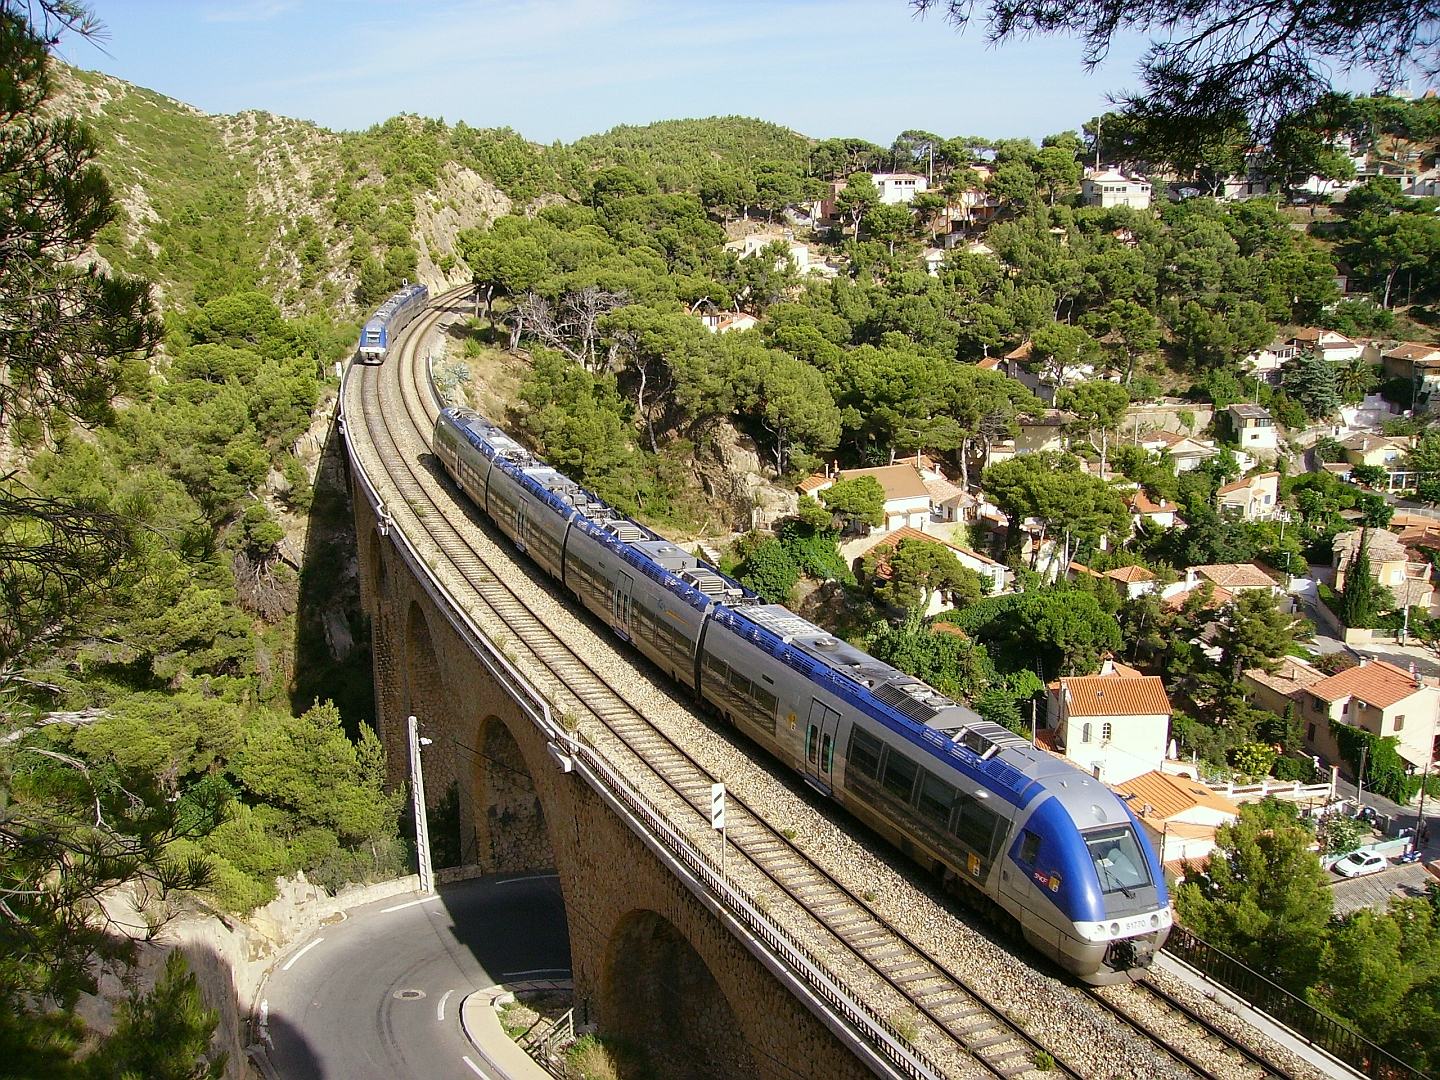 SNCF train and infrastructure